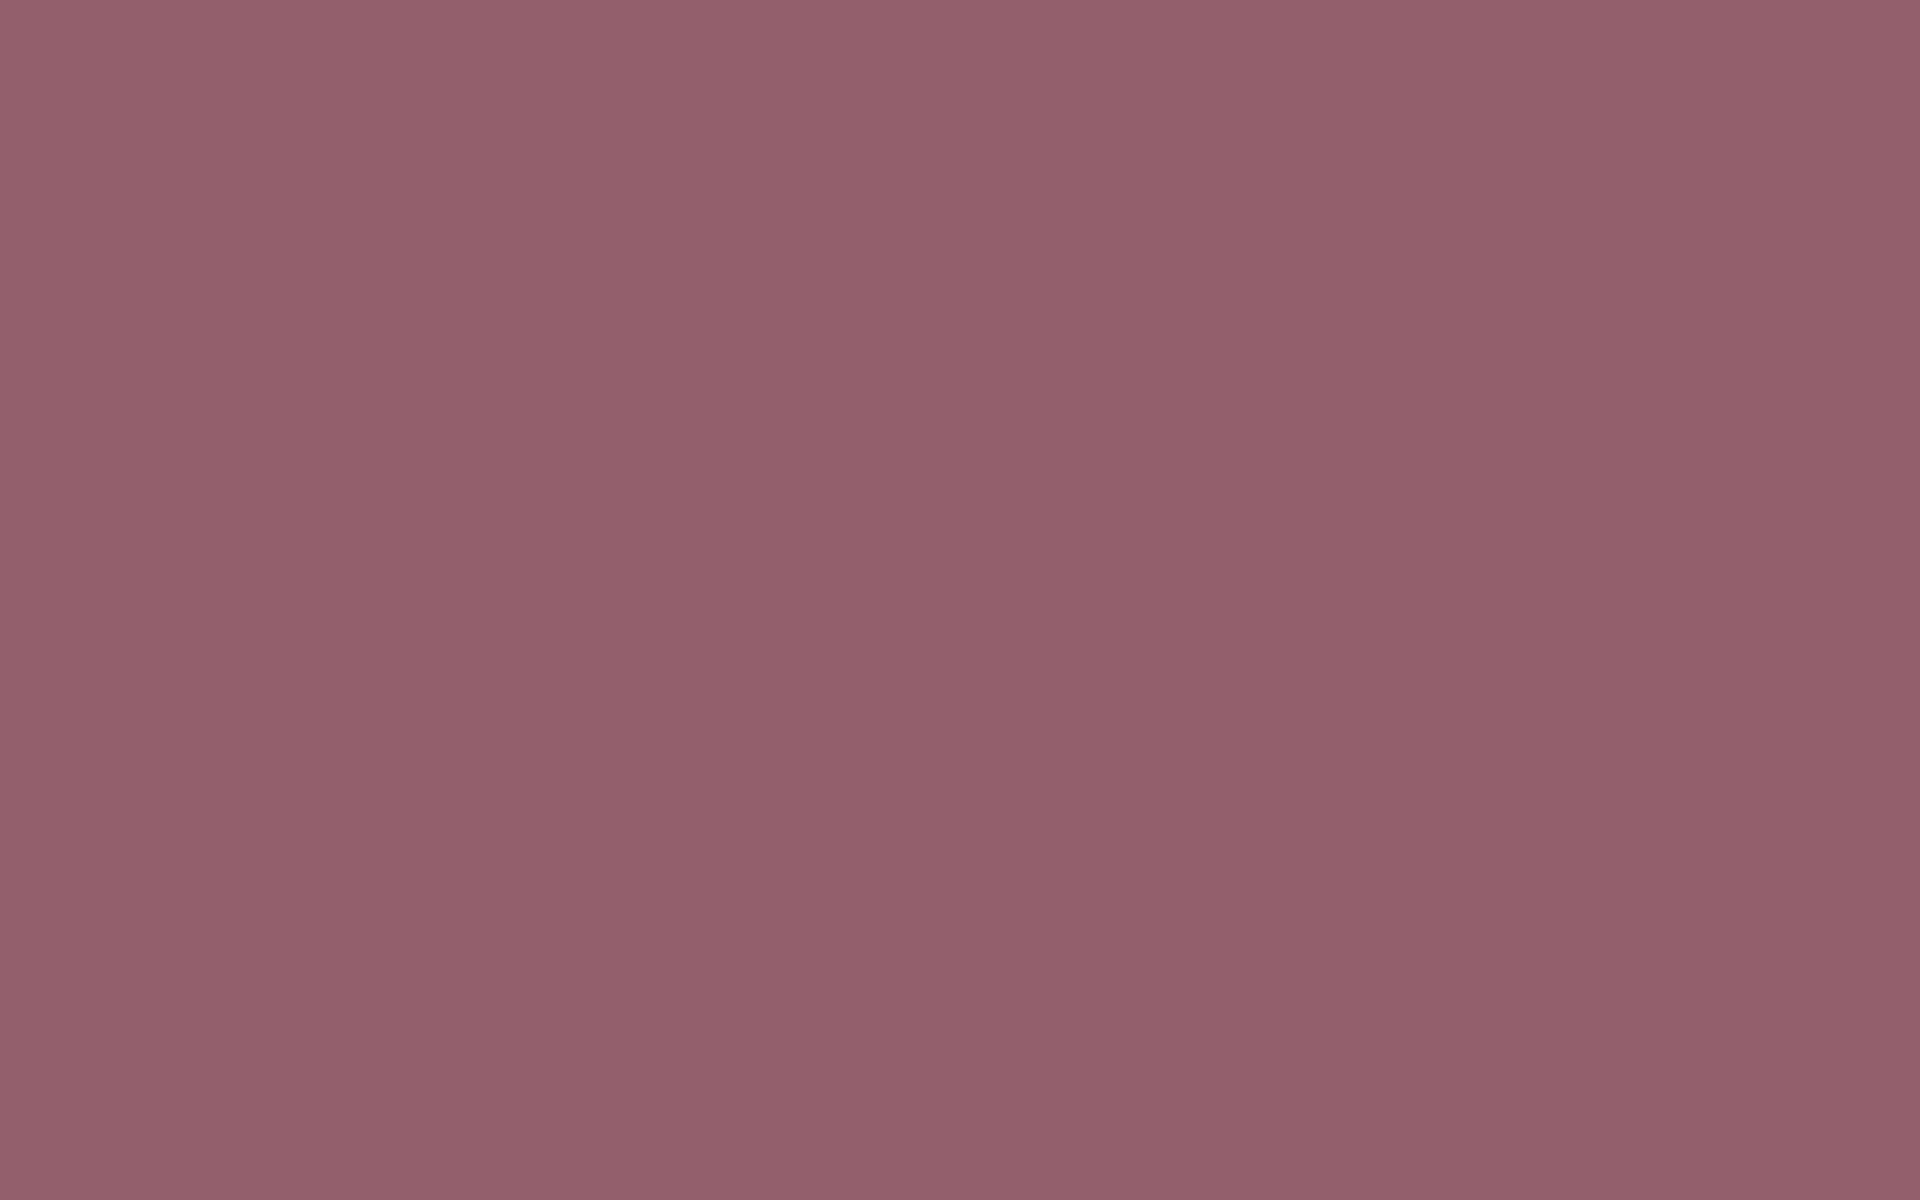 1920x1200 Mauve Taupe Solid Color Background